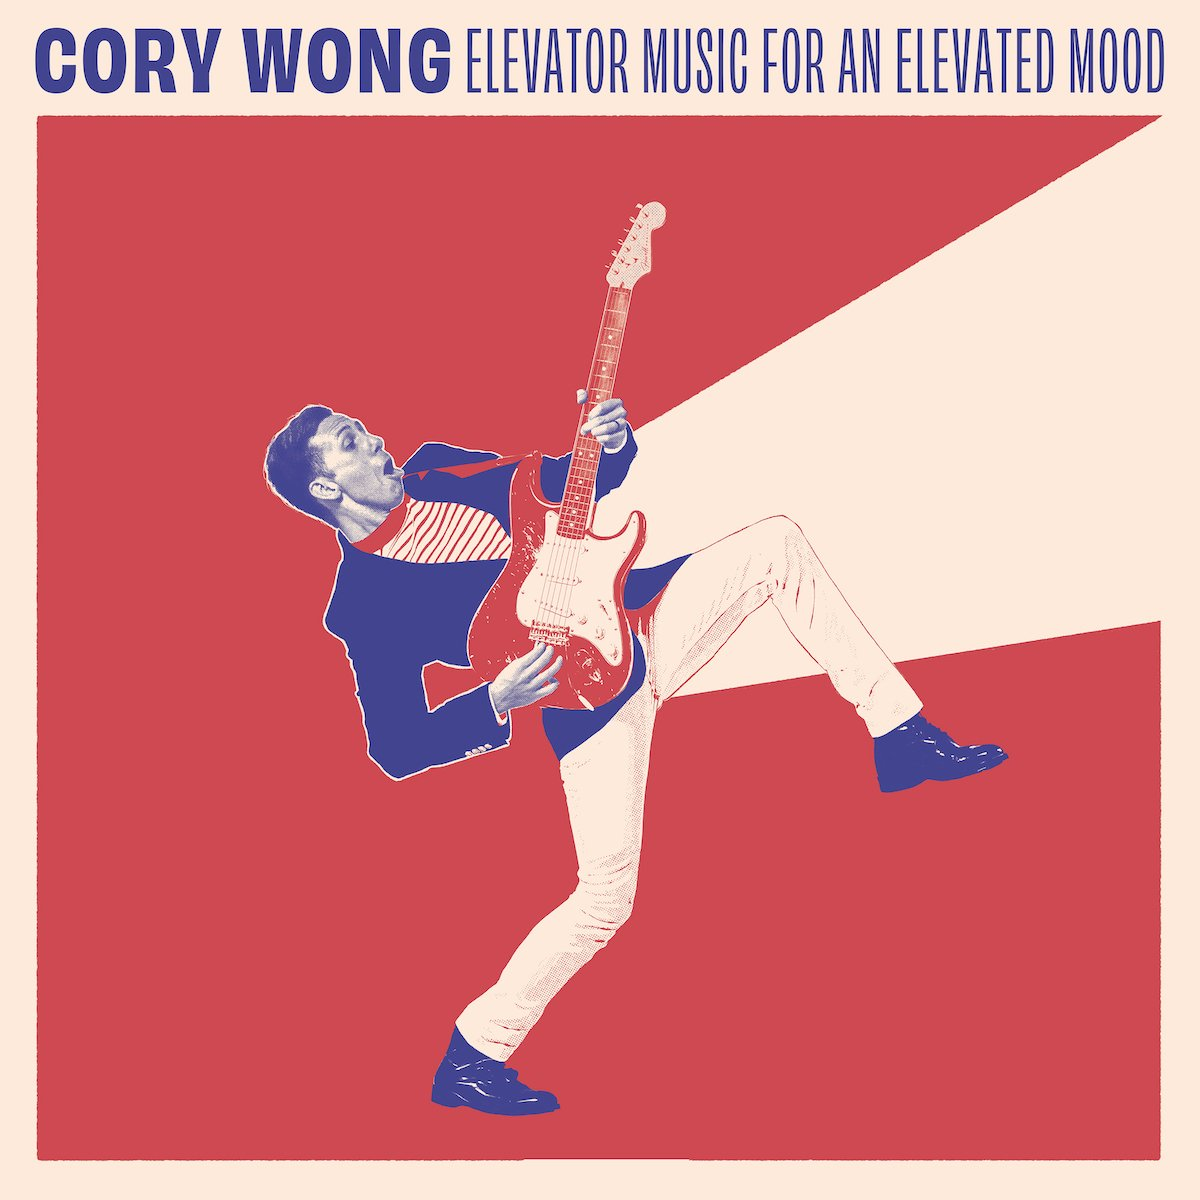 Acclaimed guitarist, composer, producer CORY WONG releases new album 'Elevator Music For An Elevated Mood'